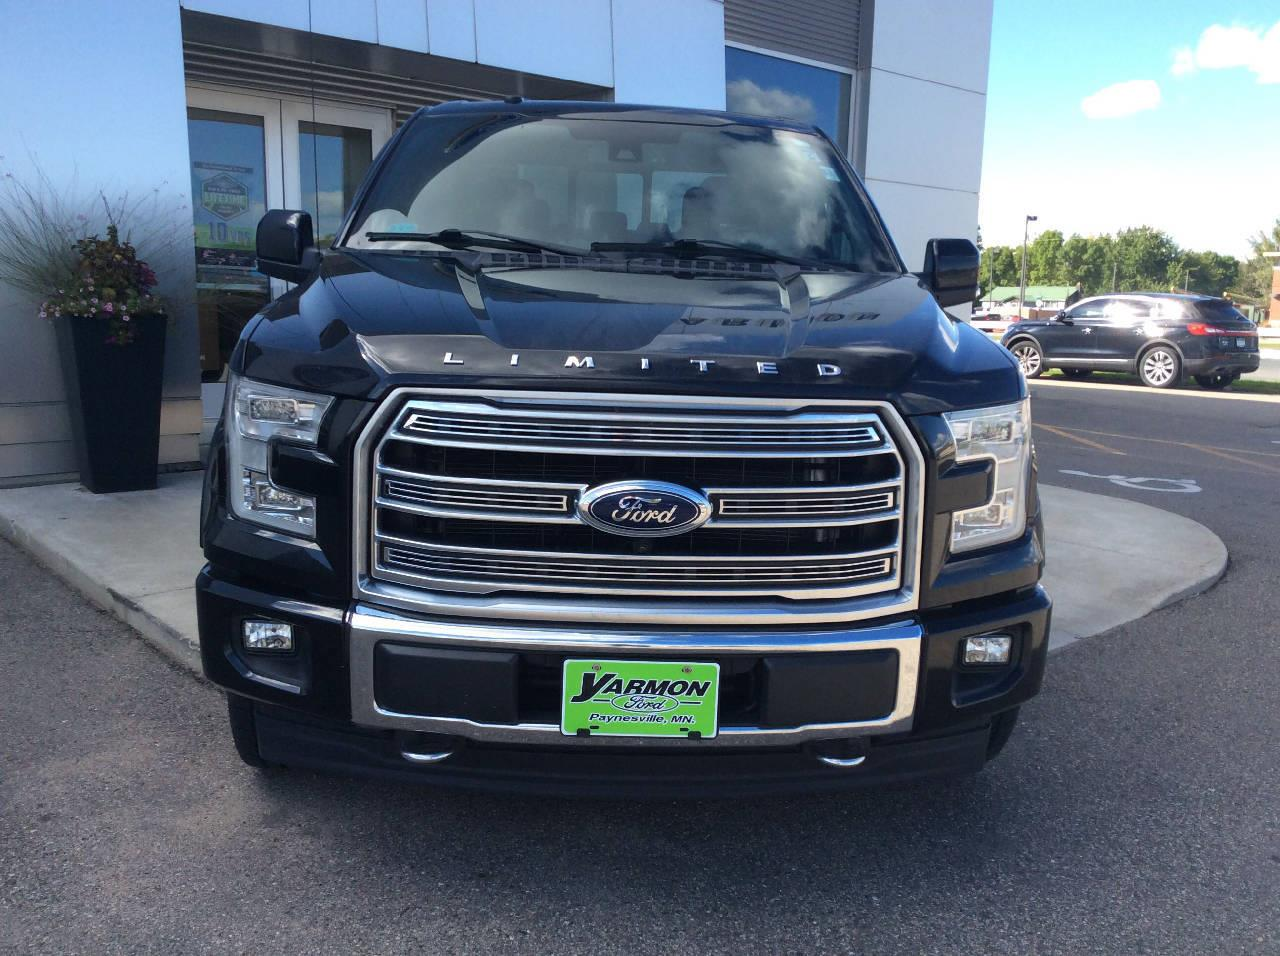 Used 2017 Ford F-150 Limited with VIN 1FTEW1EG3HFC89903 for sale in Paynesville, Minnesota